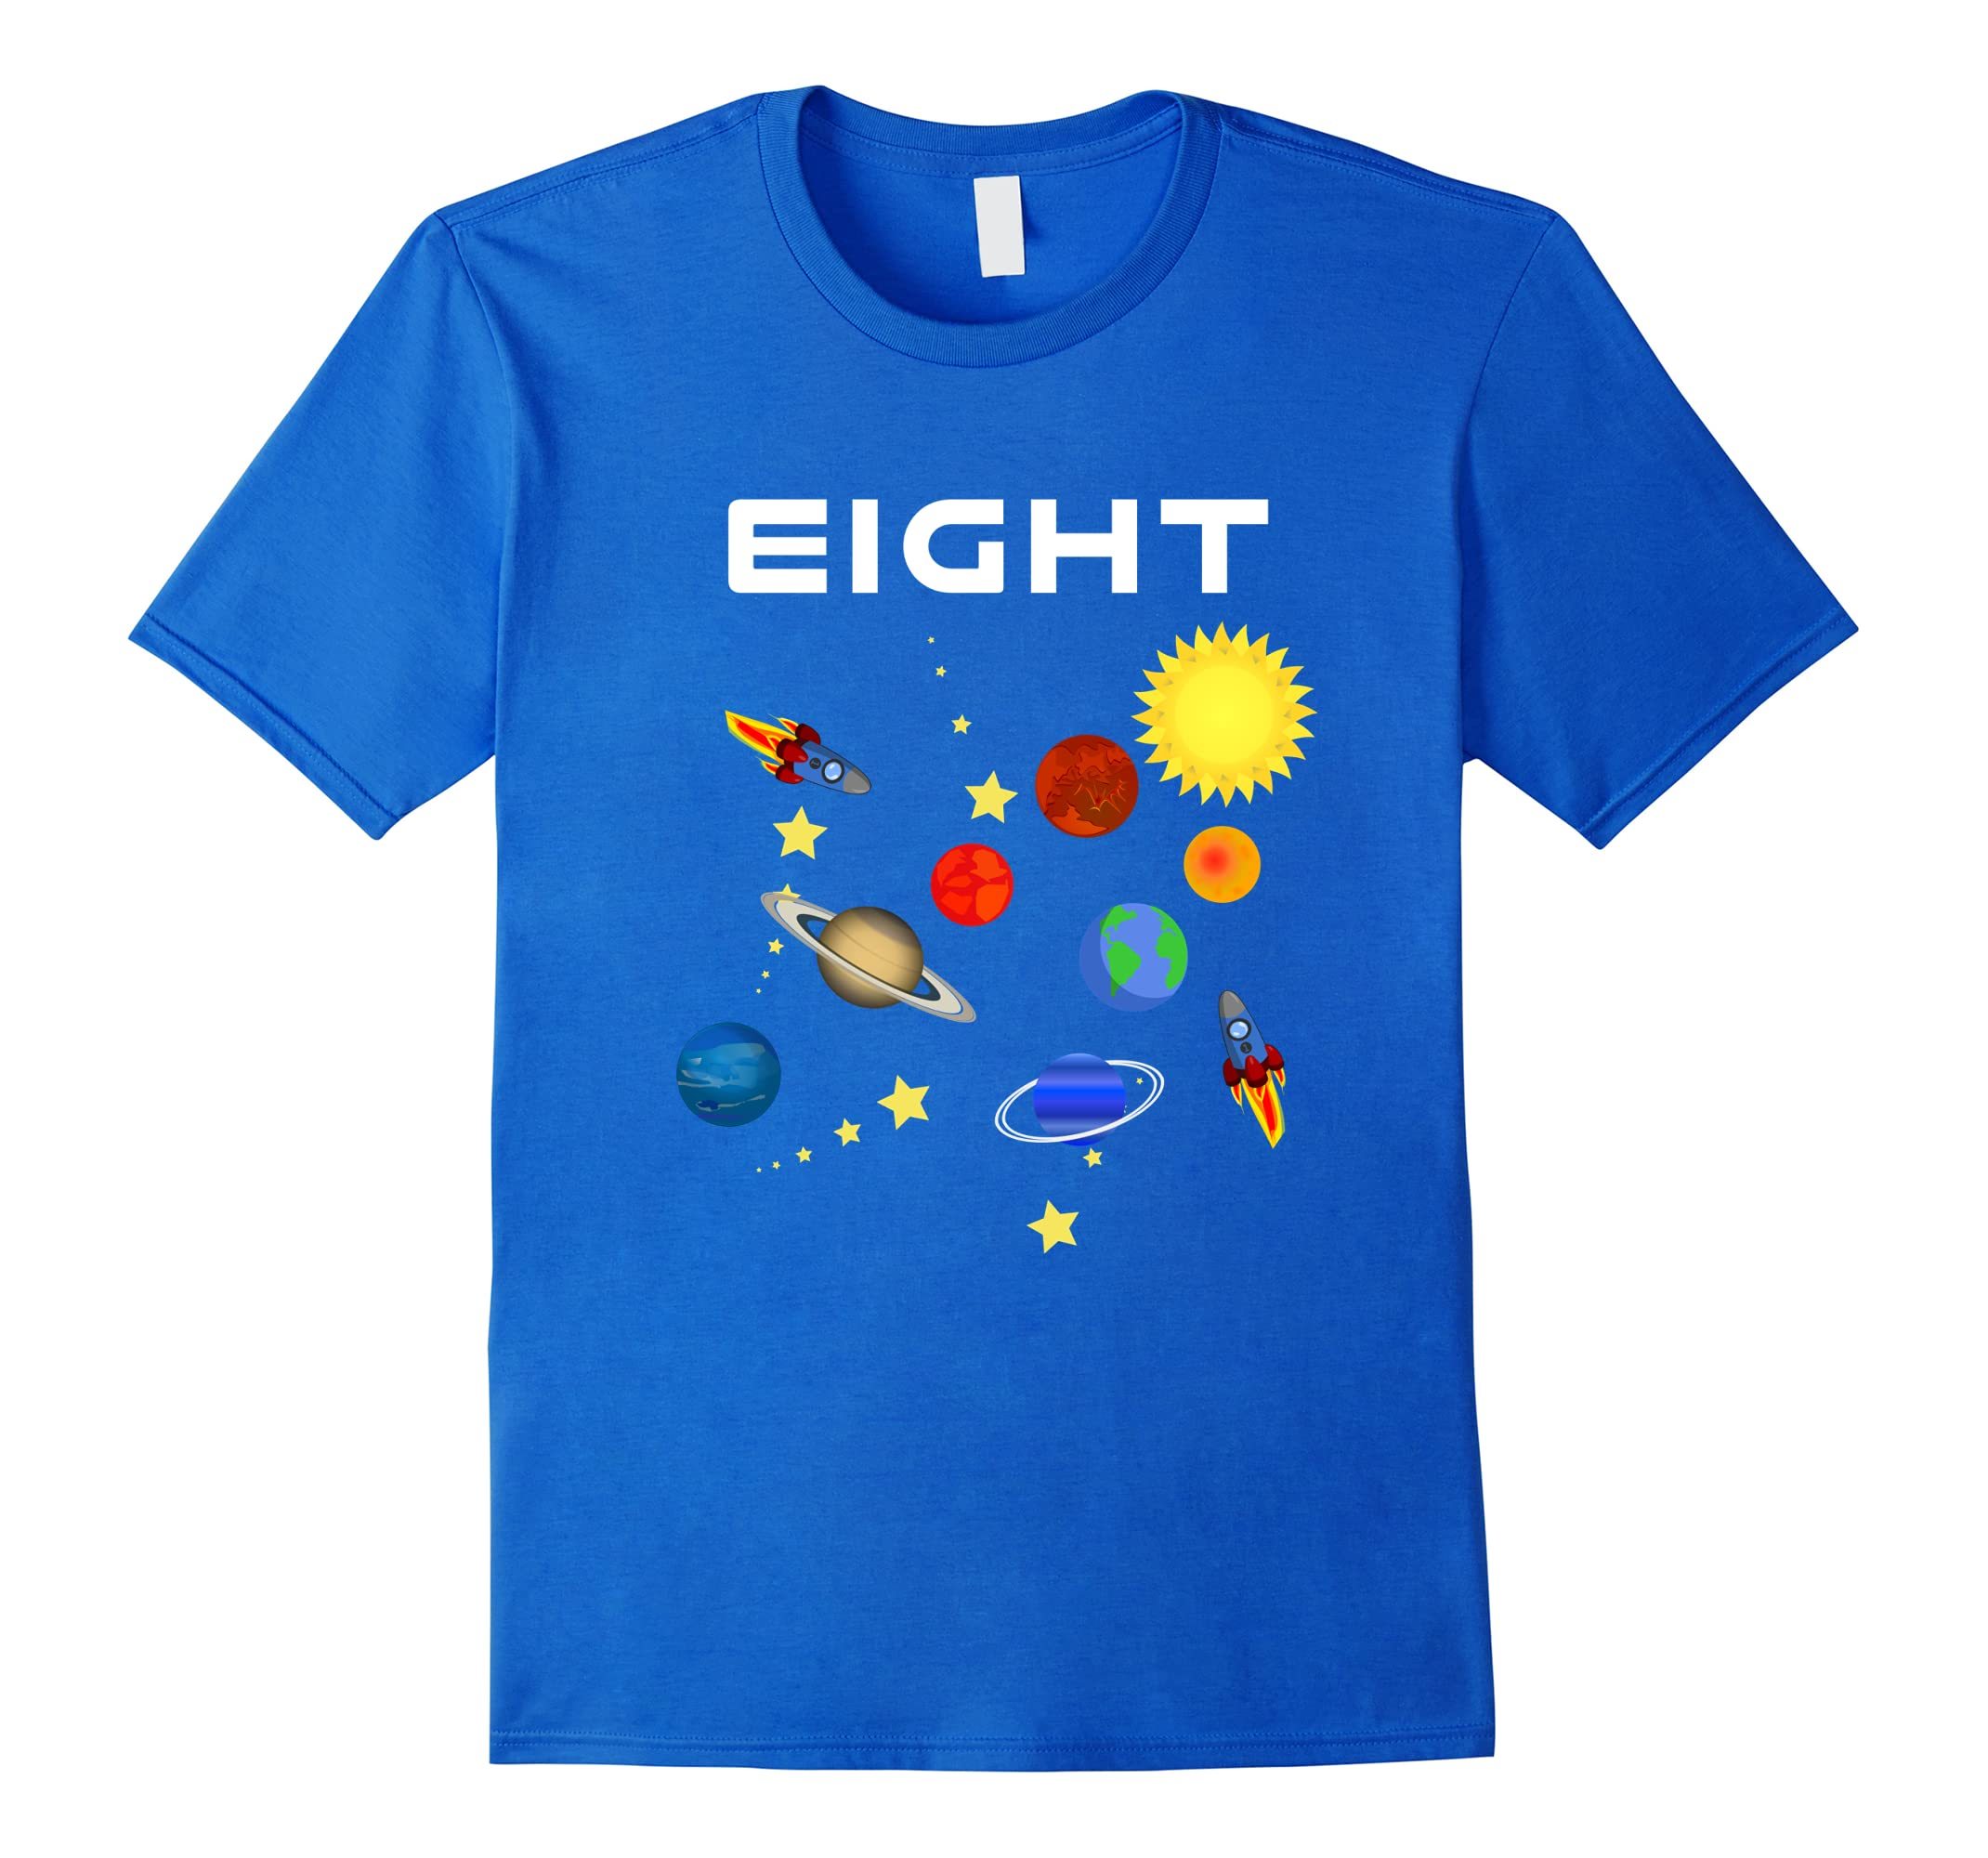 8 Year Old Outer Space Birthday Party 8th T Shirt RT